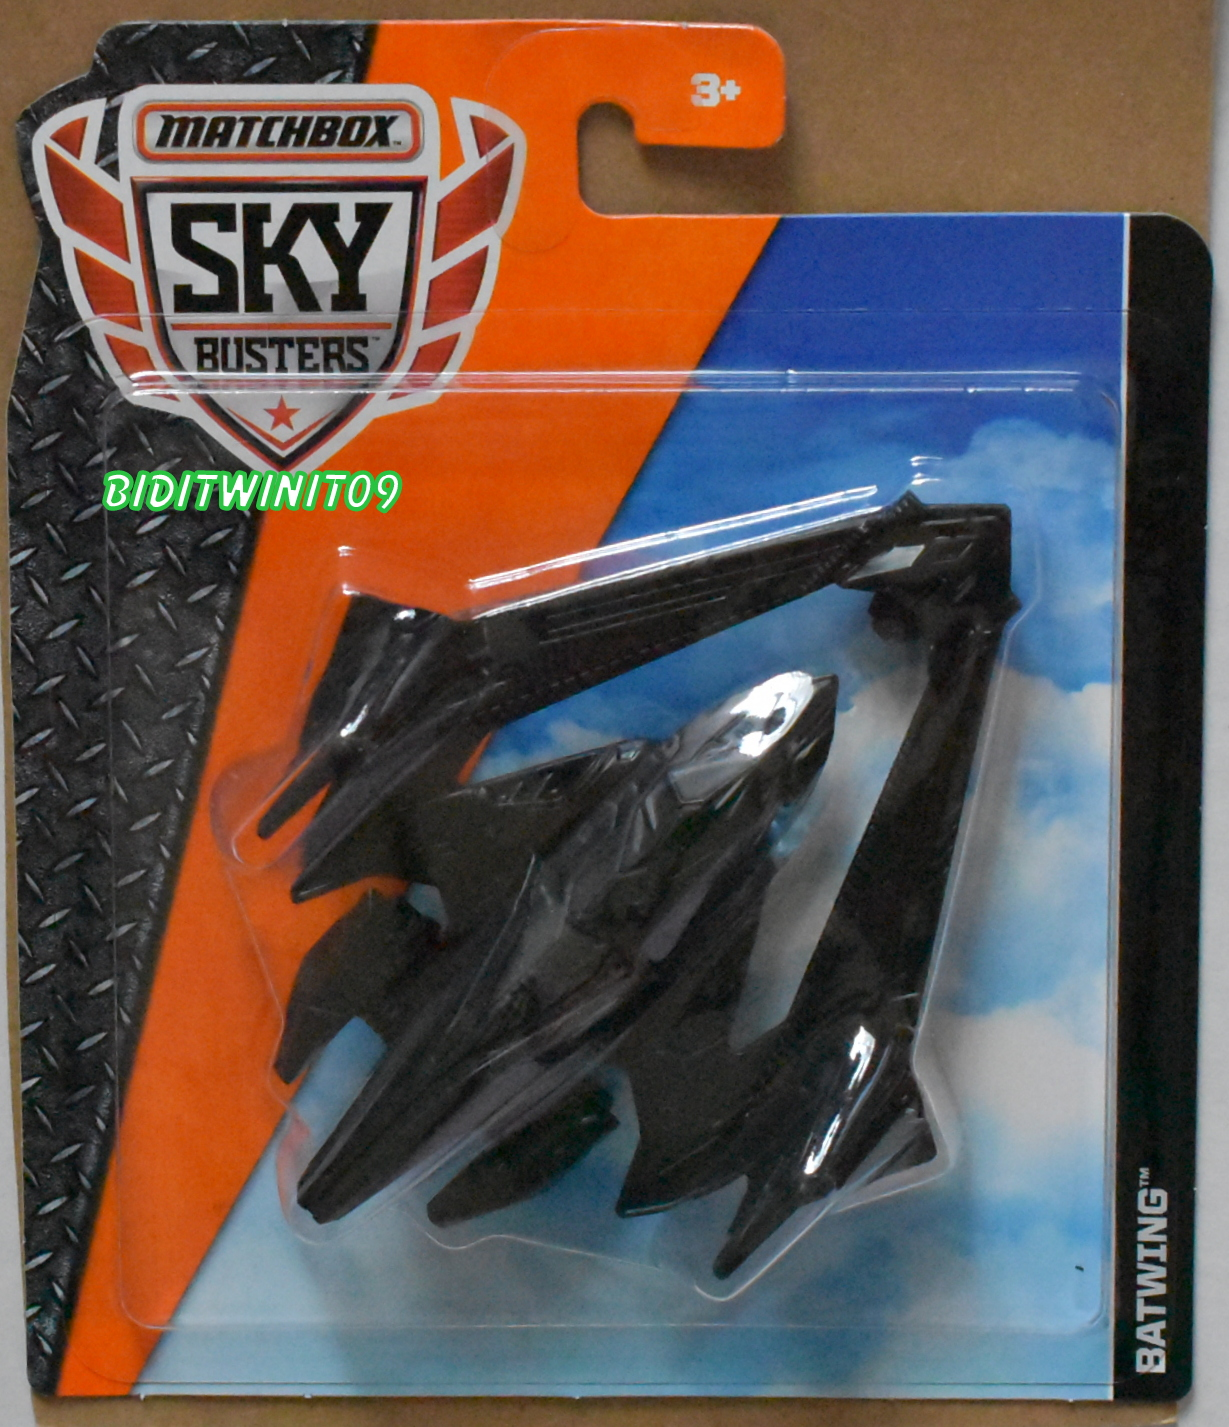 MATCHBOX SKYBUSTERS BATWING